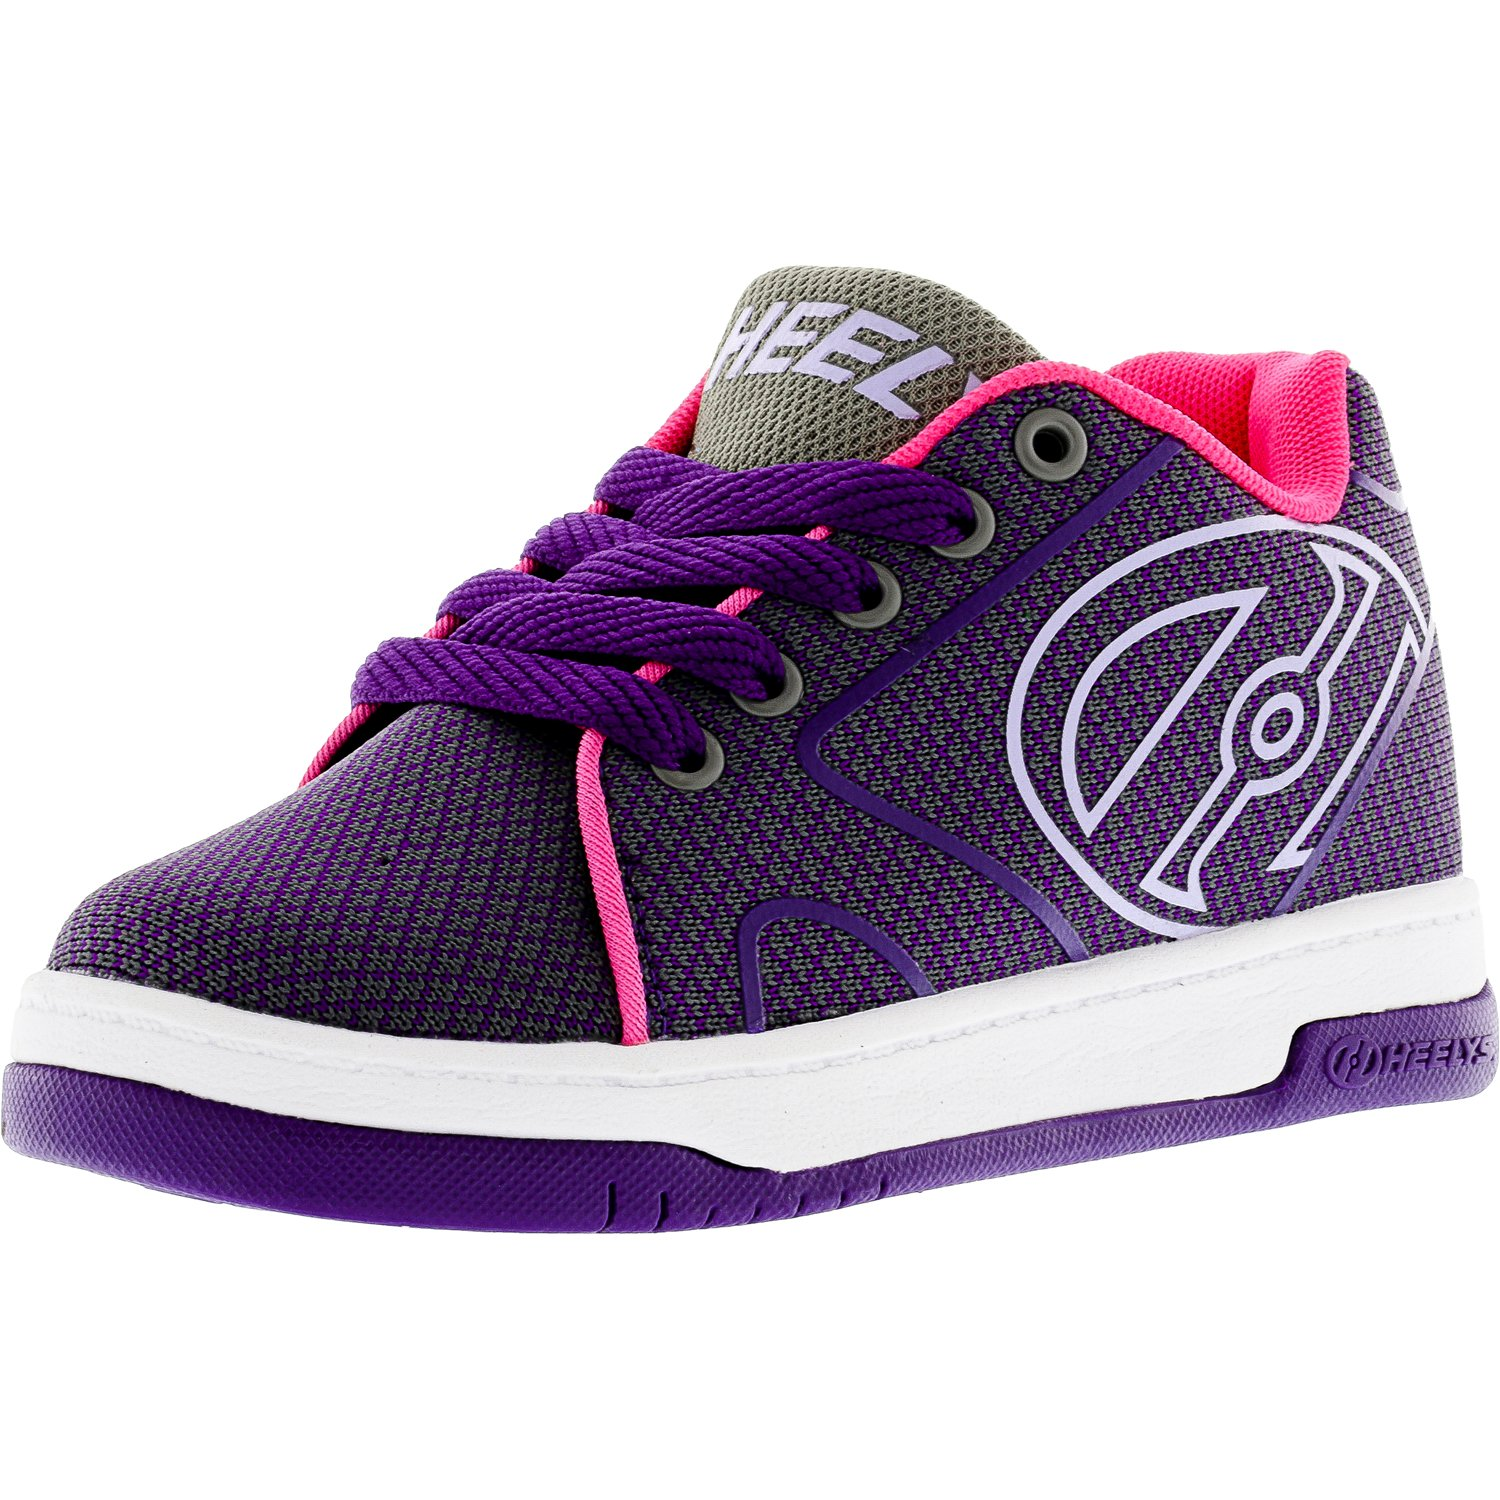 Heelys Propel Knit Grey / Purple Neon Pink Ankle-High Fabric Fashion Sneaker - 13M